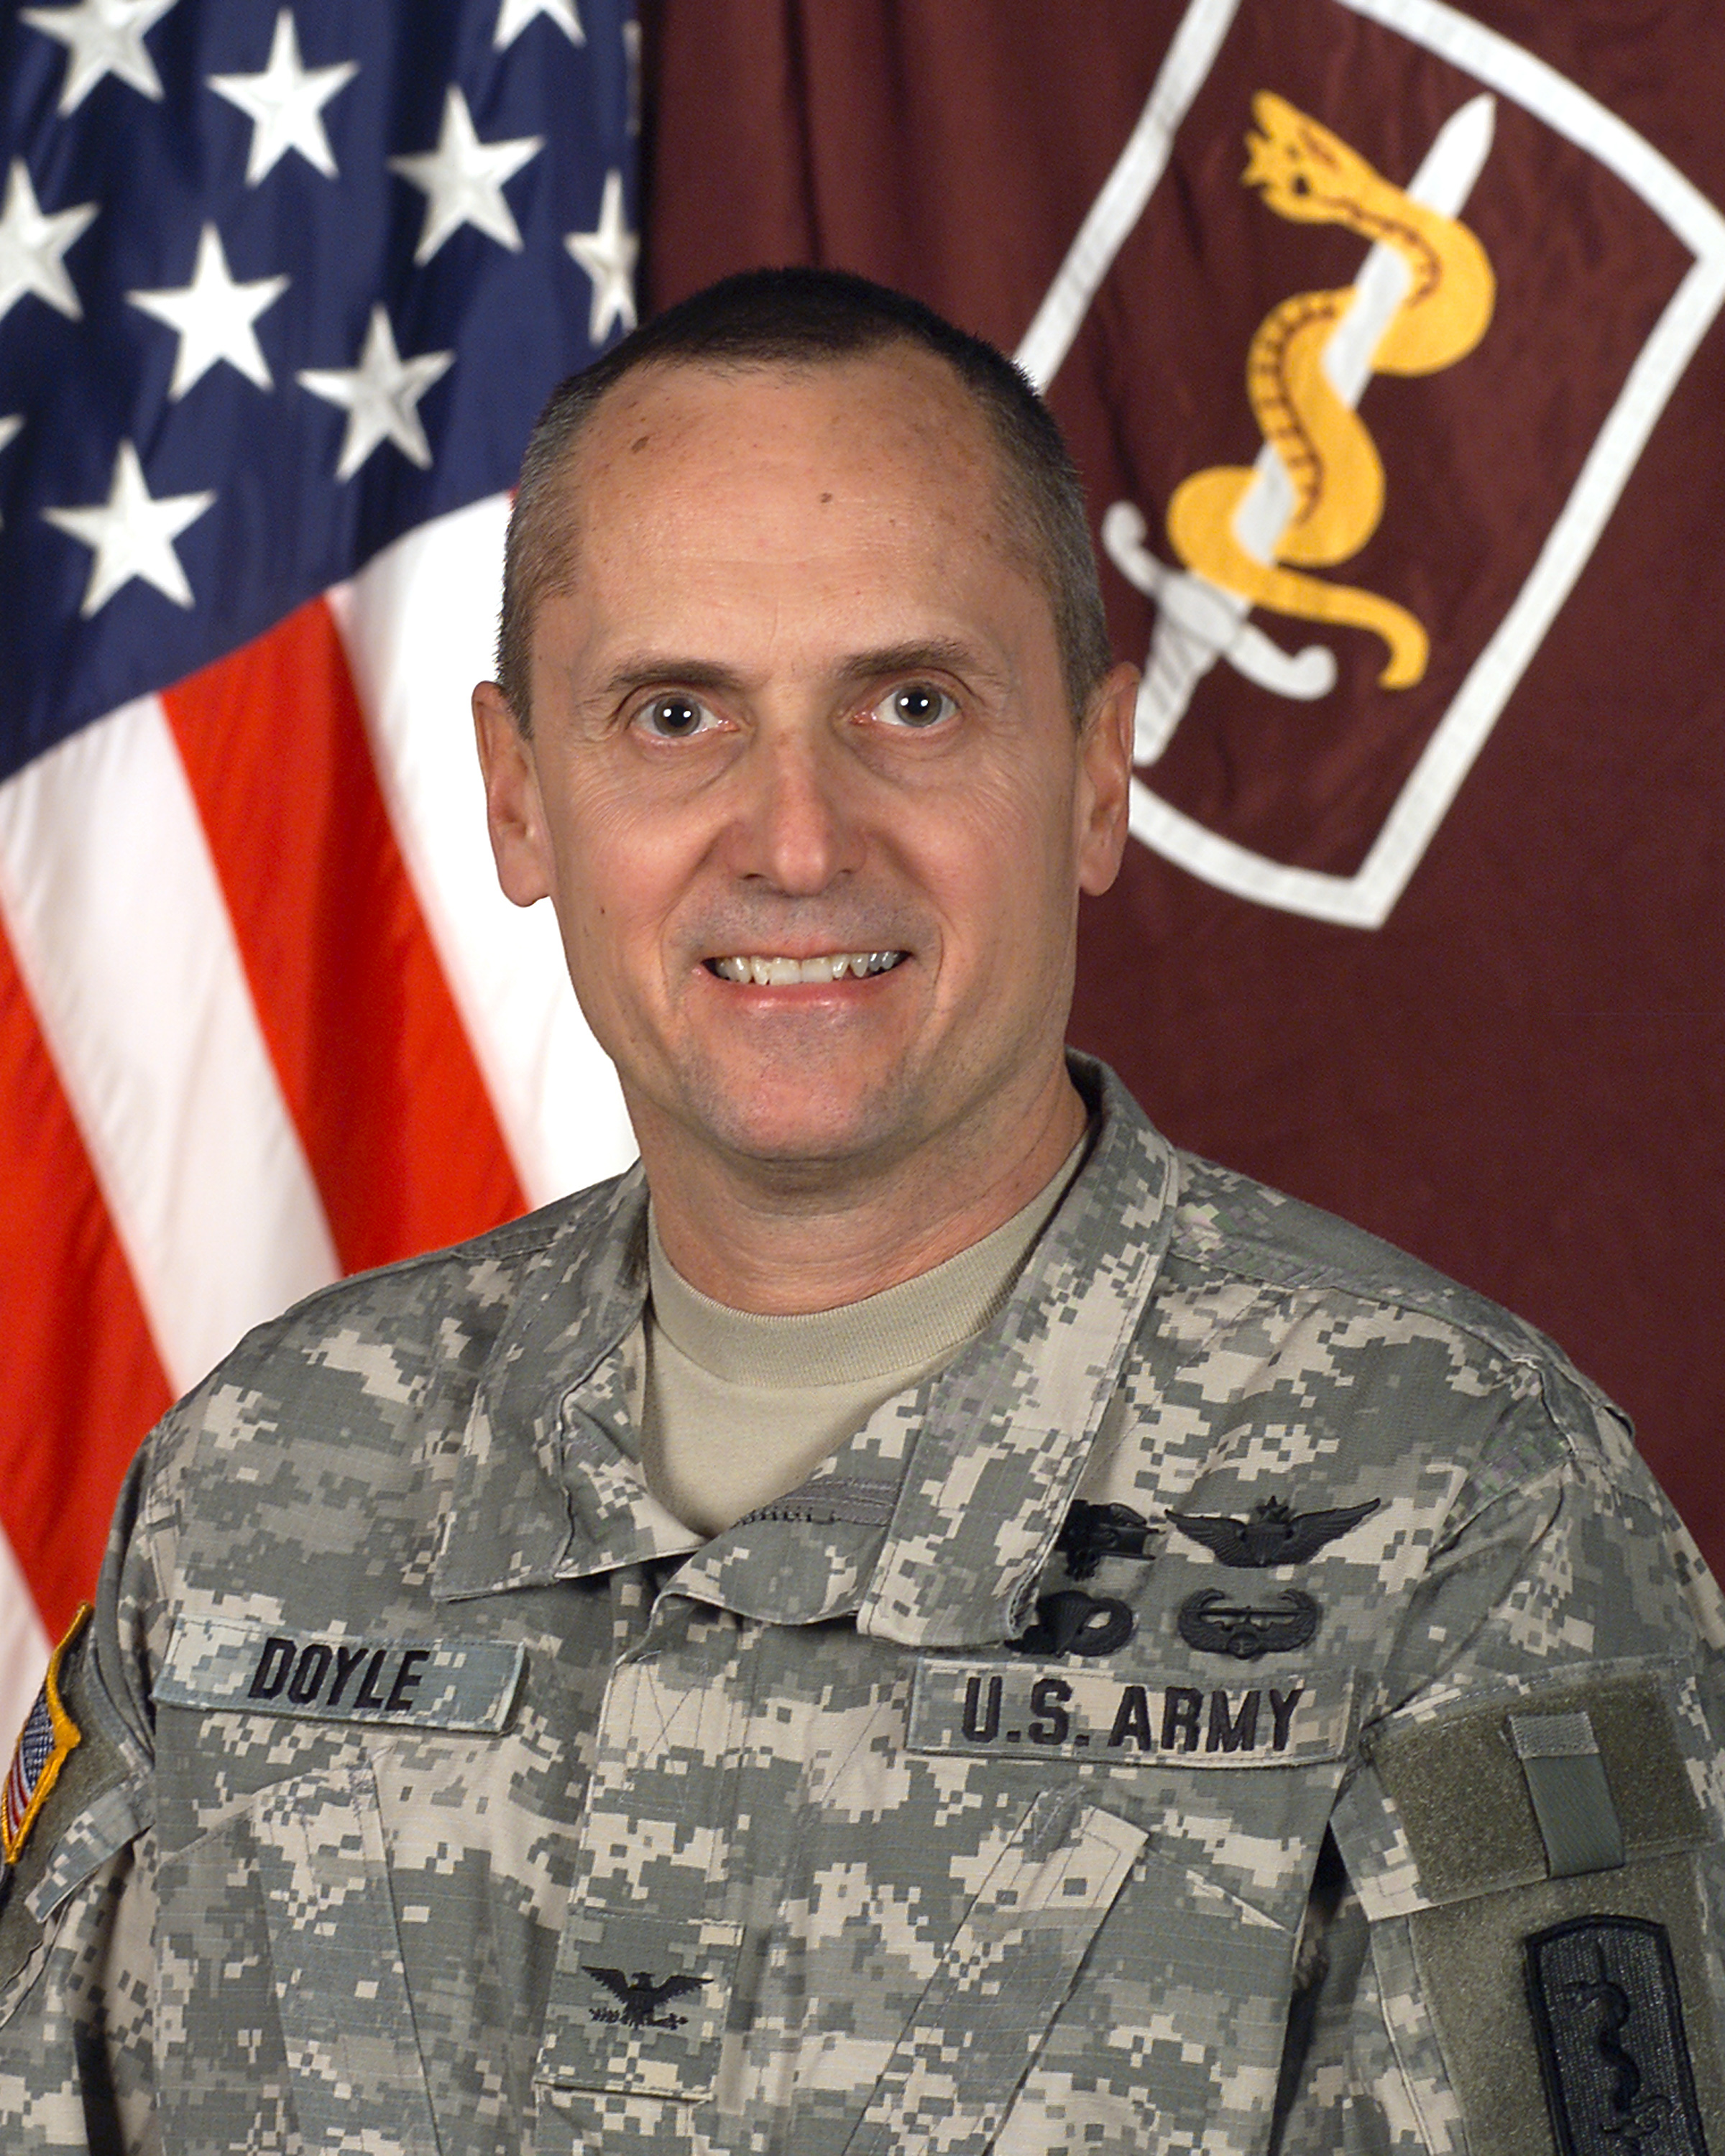 75 Waite Grad To Become 1 Star Army General The Blade